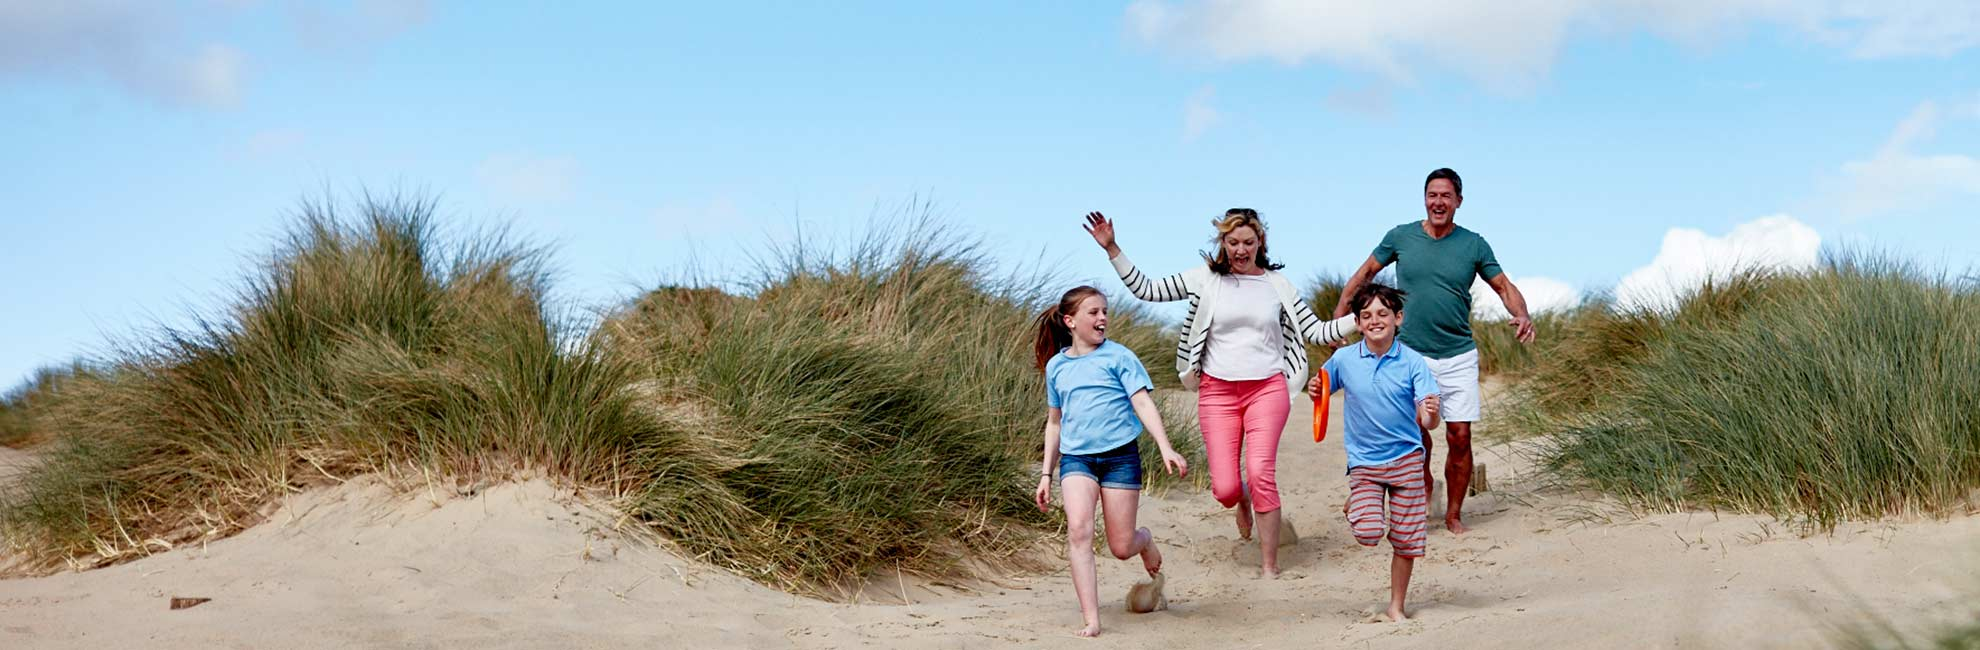 Family running thorugh sand dunes at camber sands